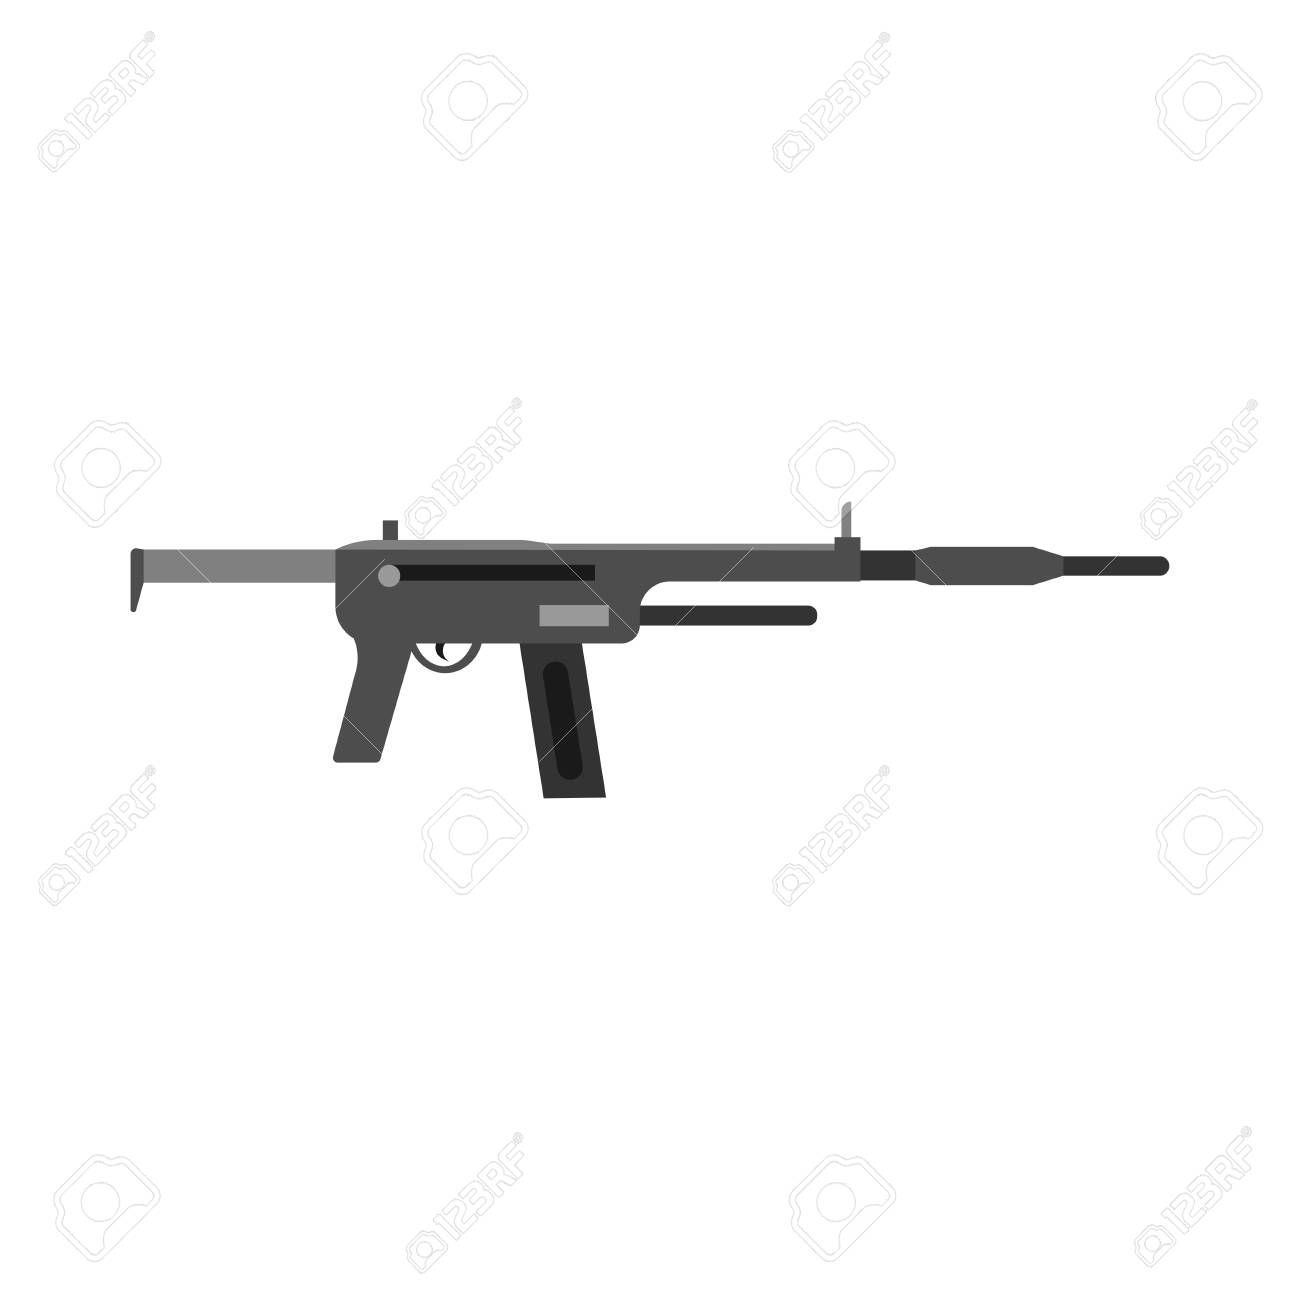 Weapon Equipment Symbol Protection Arsenal Vector Black Power